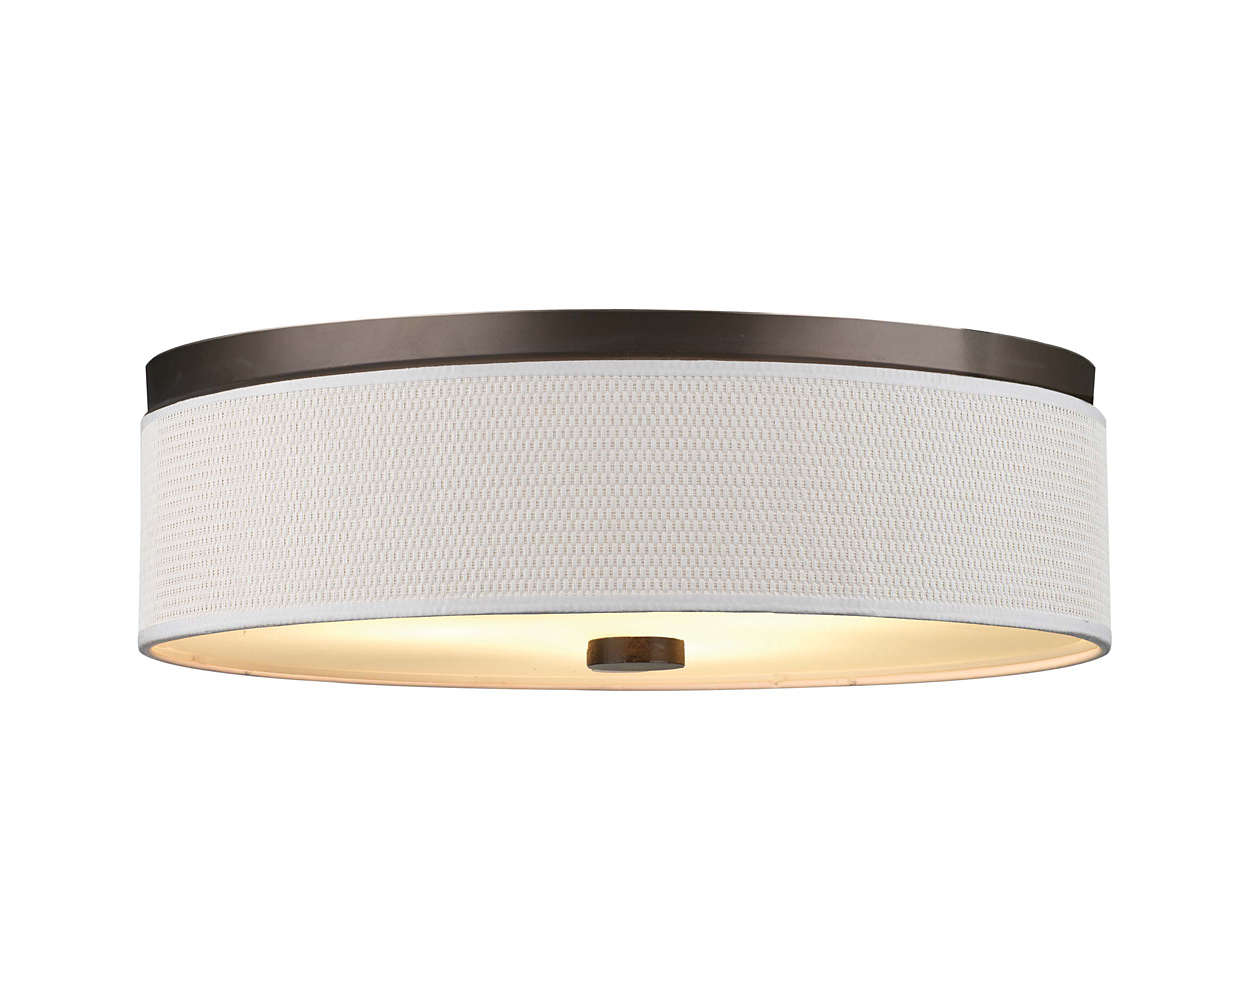 Cassandra 2-light Ceiling in Sorrel Bronze finish